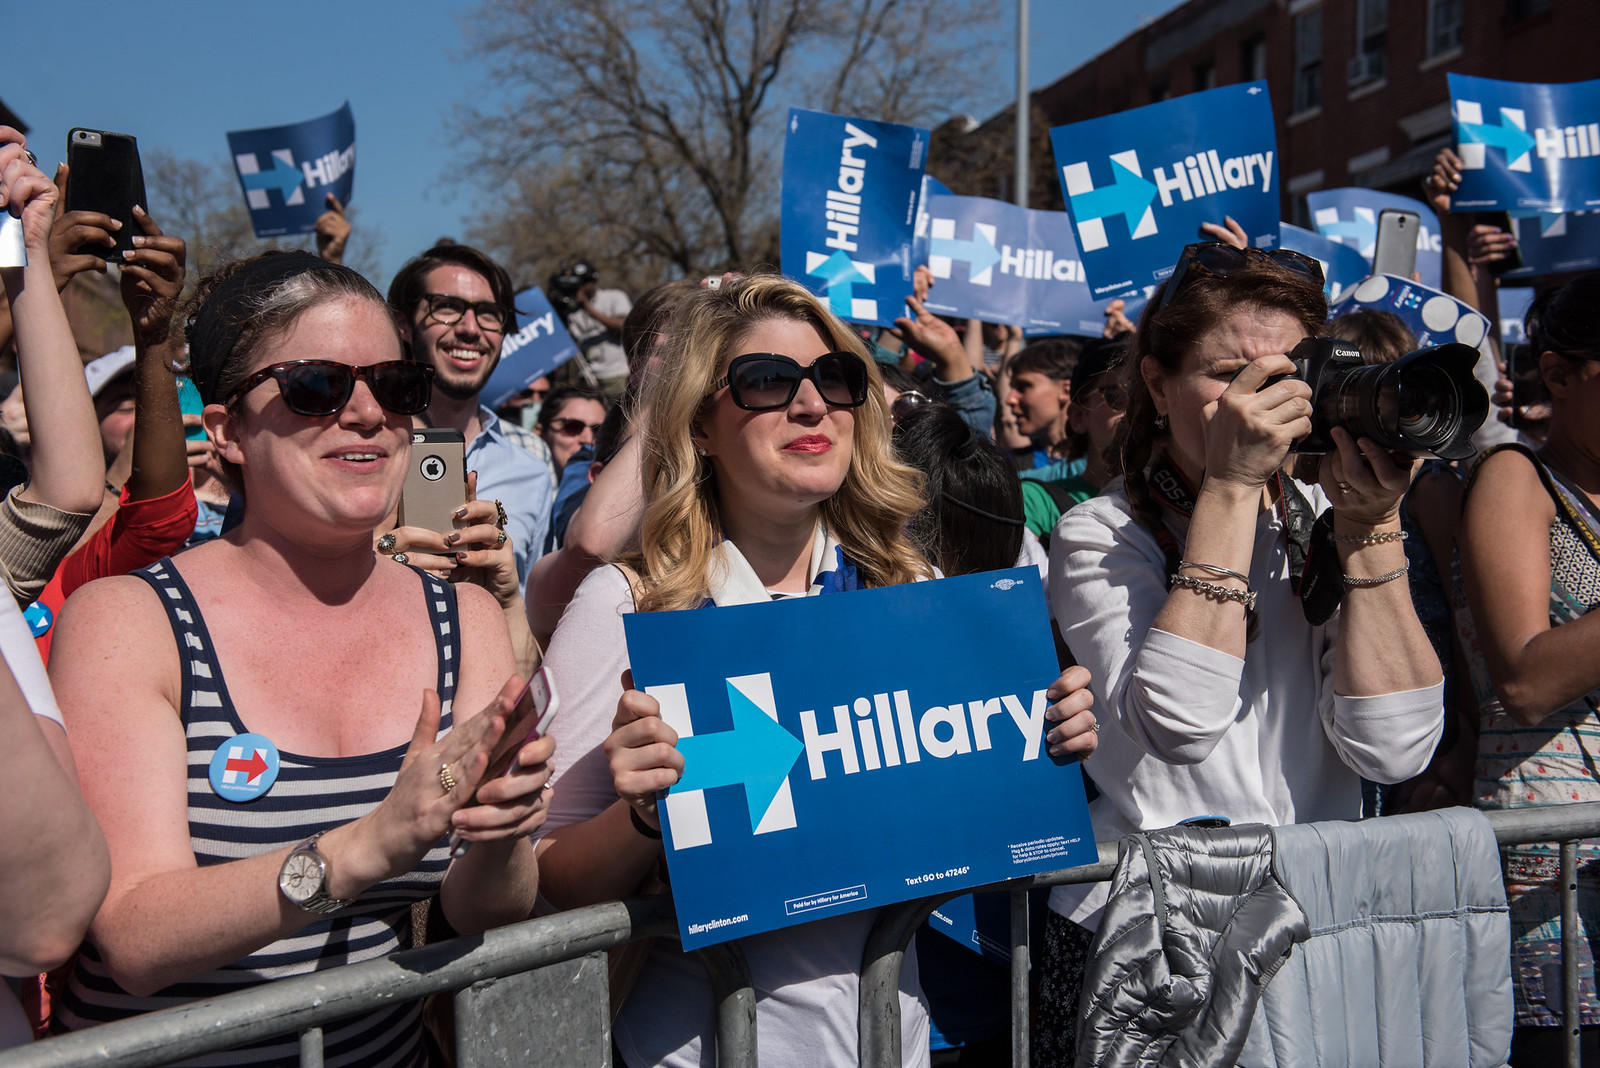 April 17, 2016 - New York, New York | by Hillary Clinton